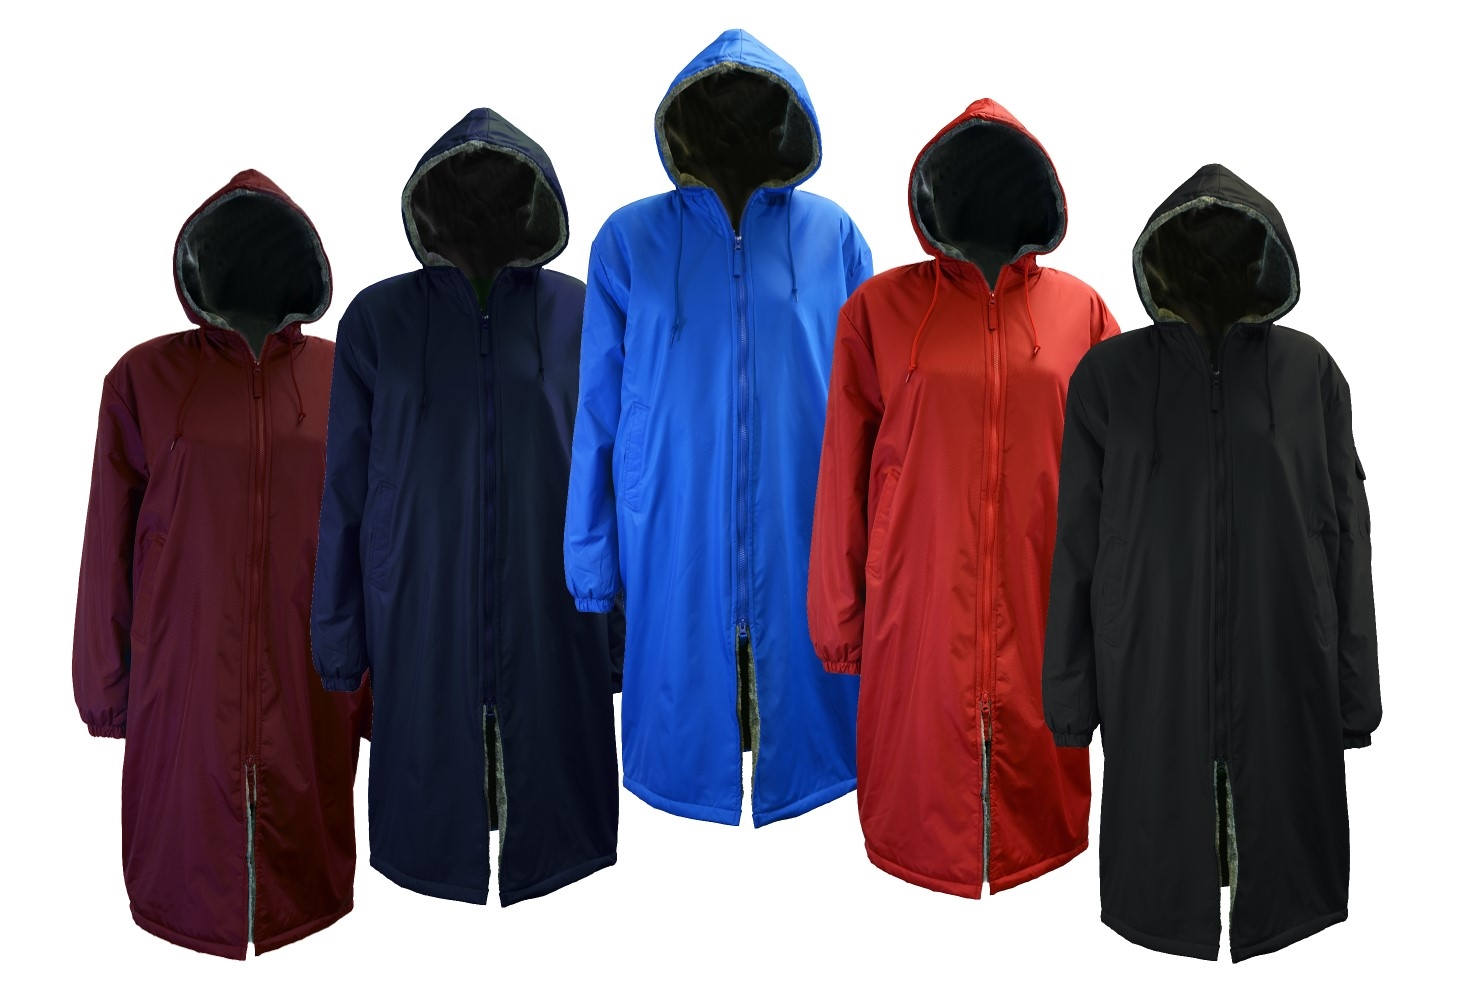 Adoretex Faux Fur Lining Swim Parka at sunwavesports.com